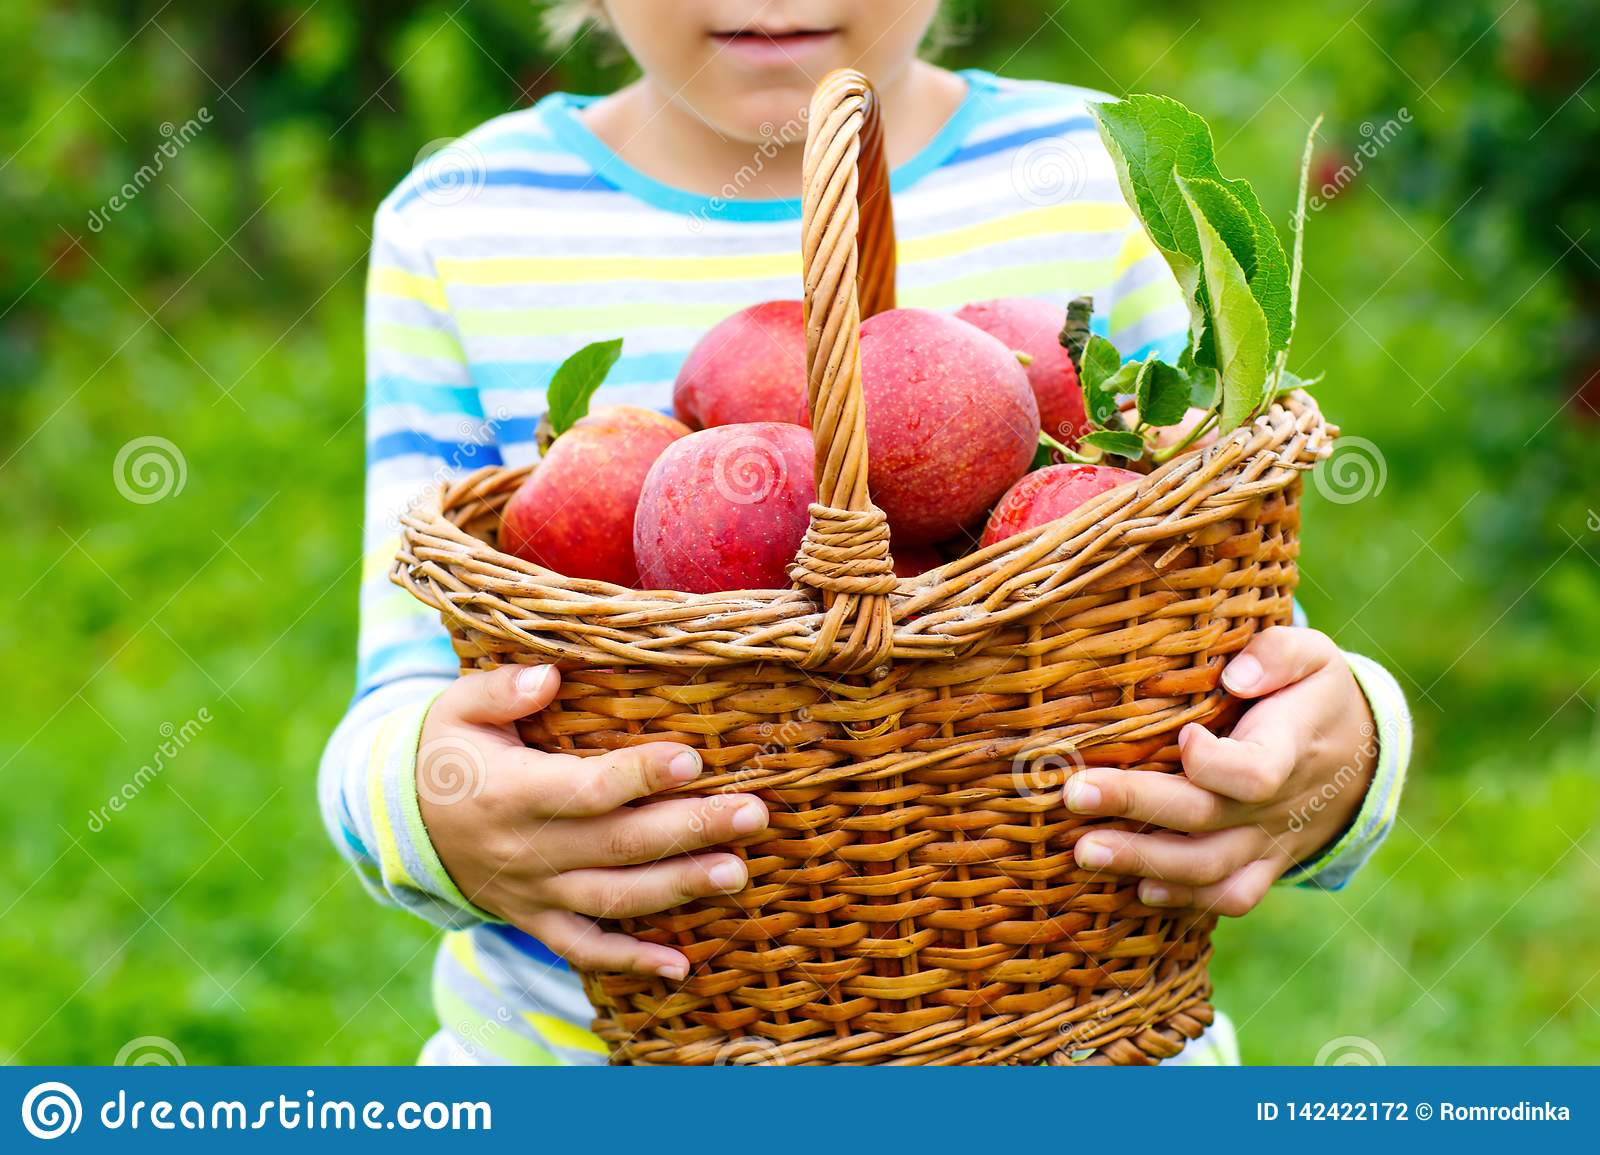 Close-up of basket holding by kid boy picking and eating red apples on organic farm, autumn outdoors. Funny little